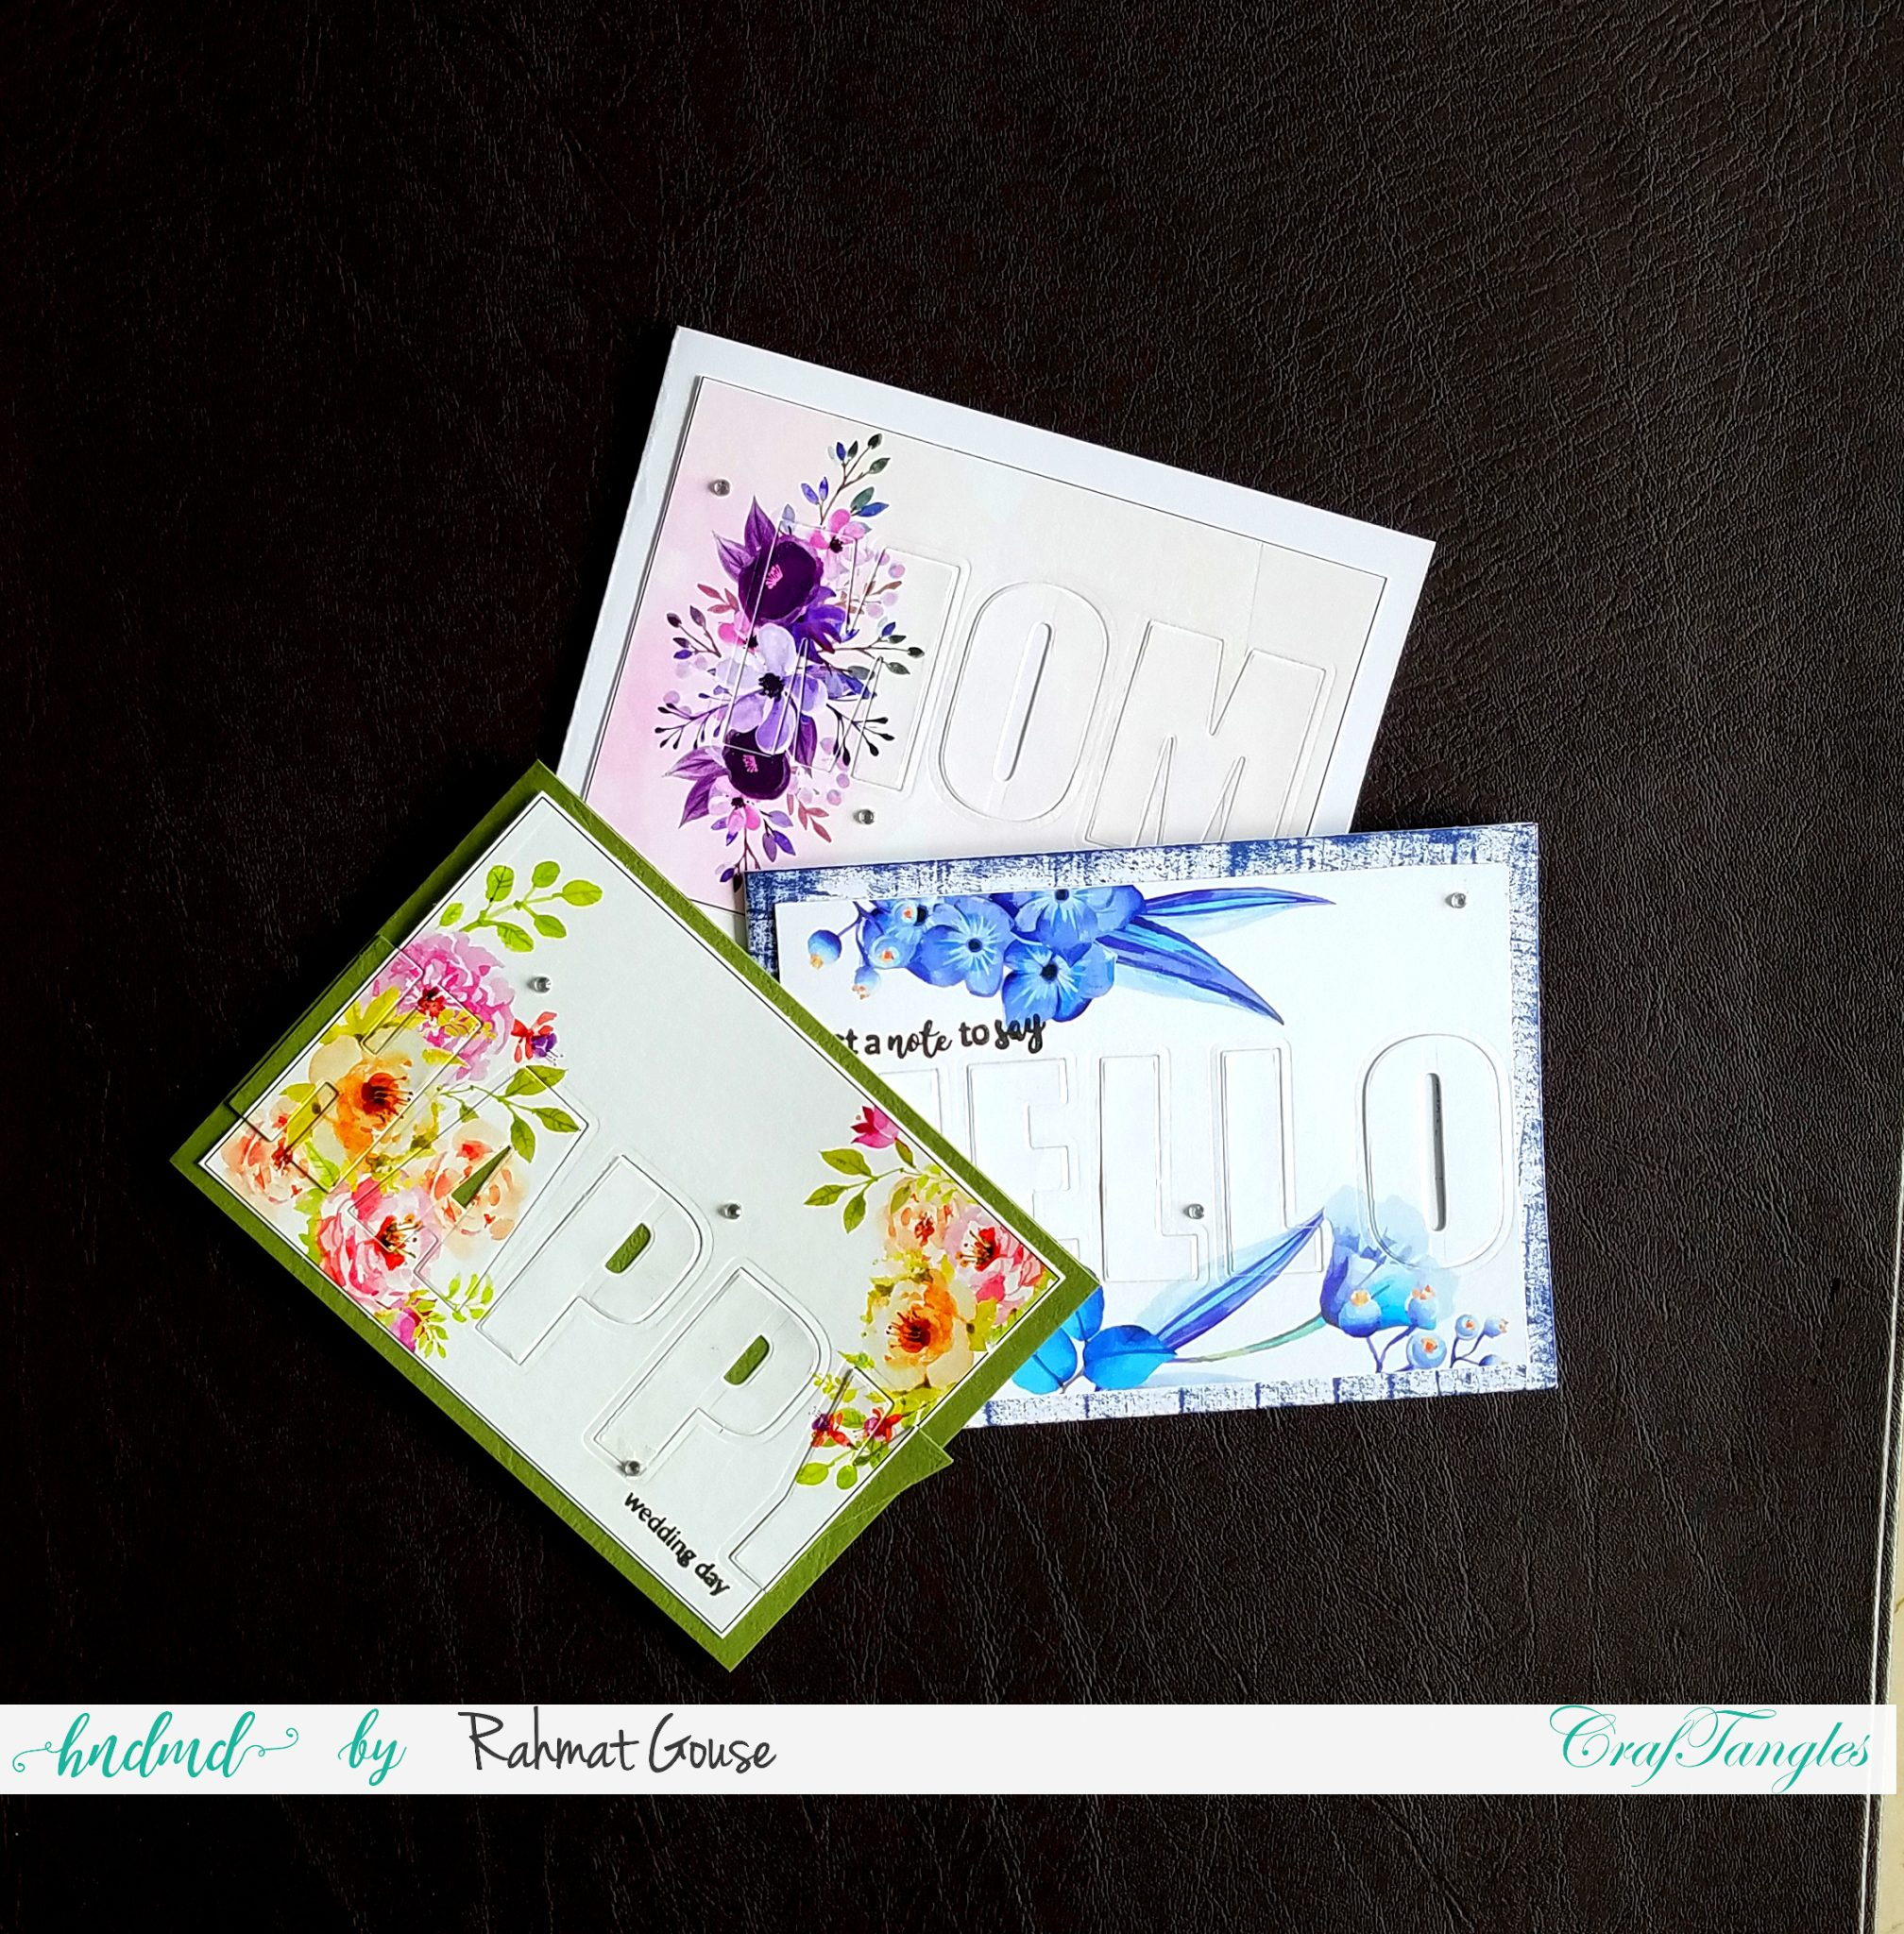 CrafTangles Monthly Challenges 2020 - March 7